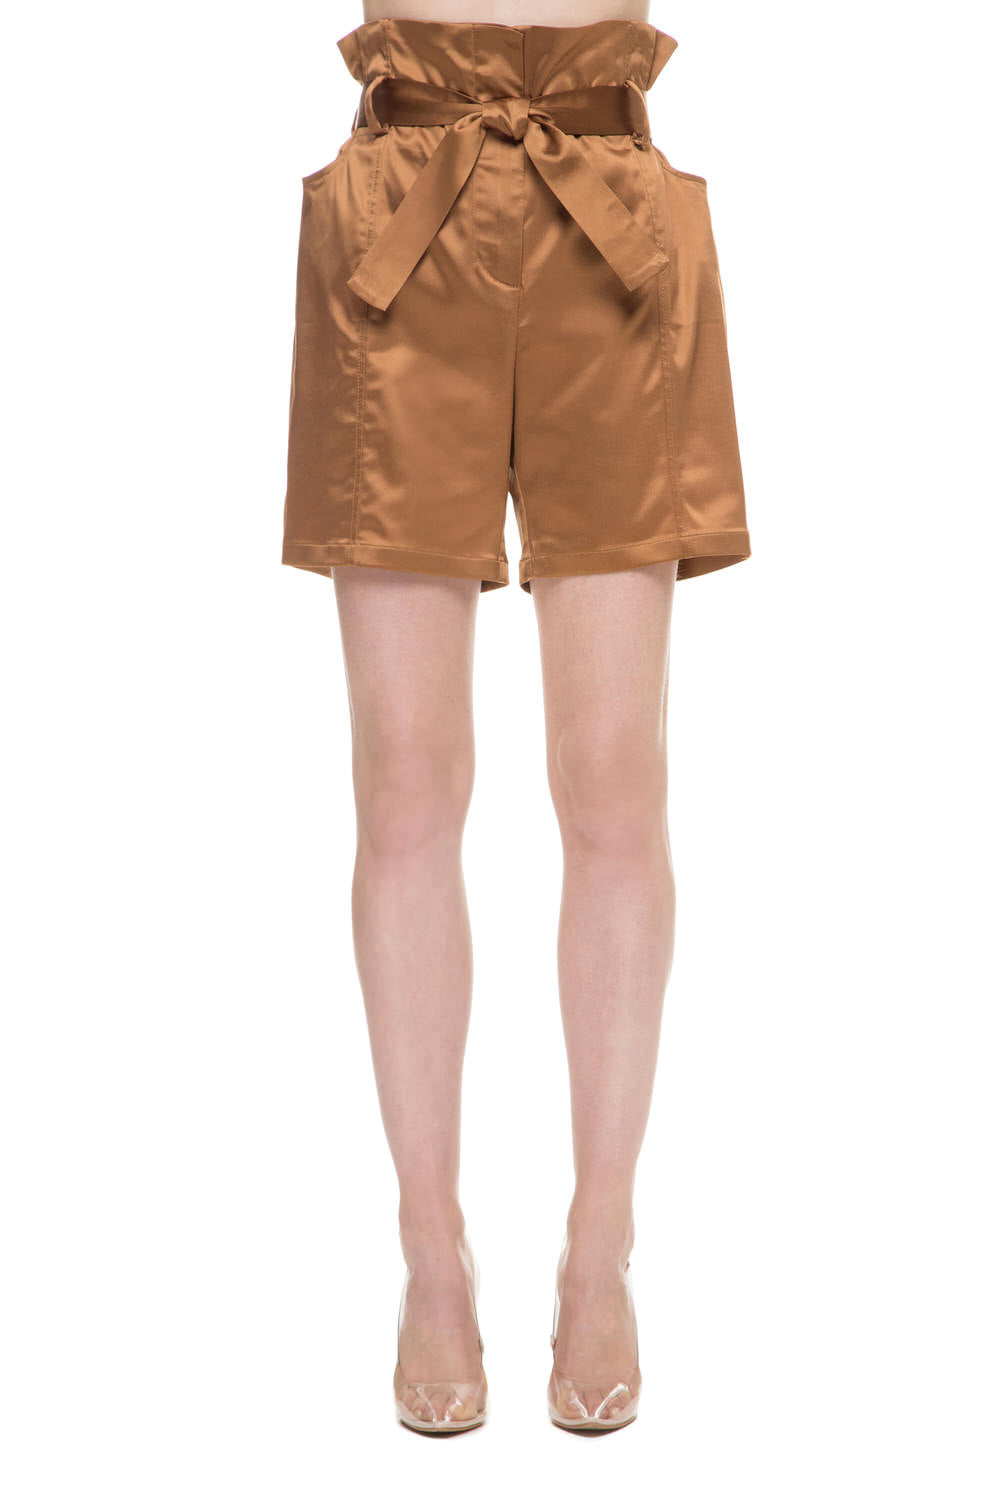 Brown Shorts